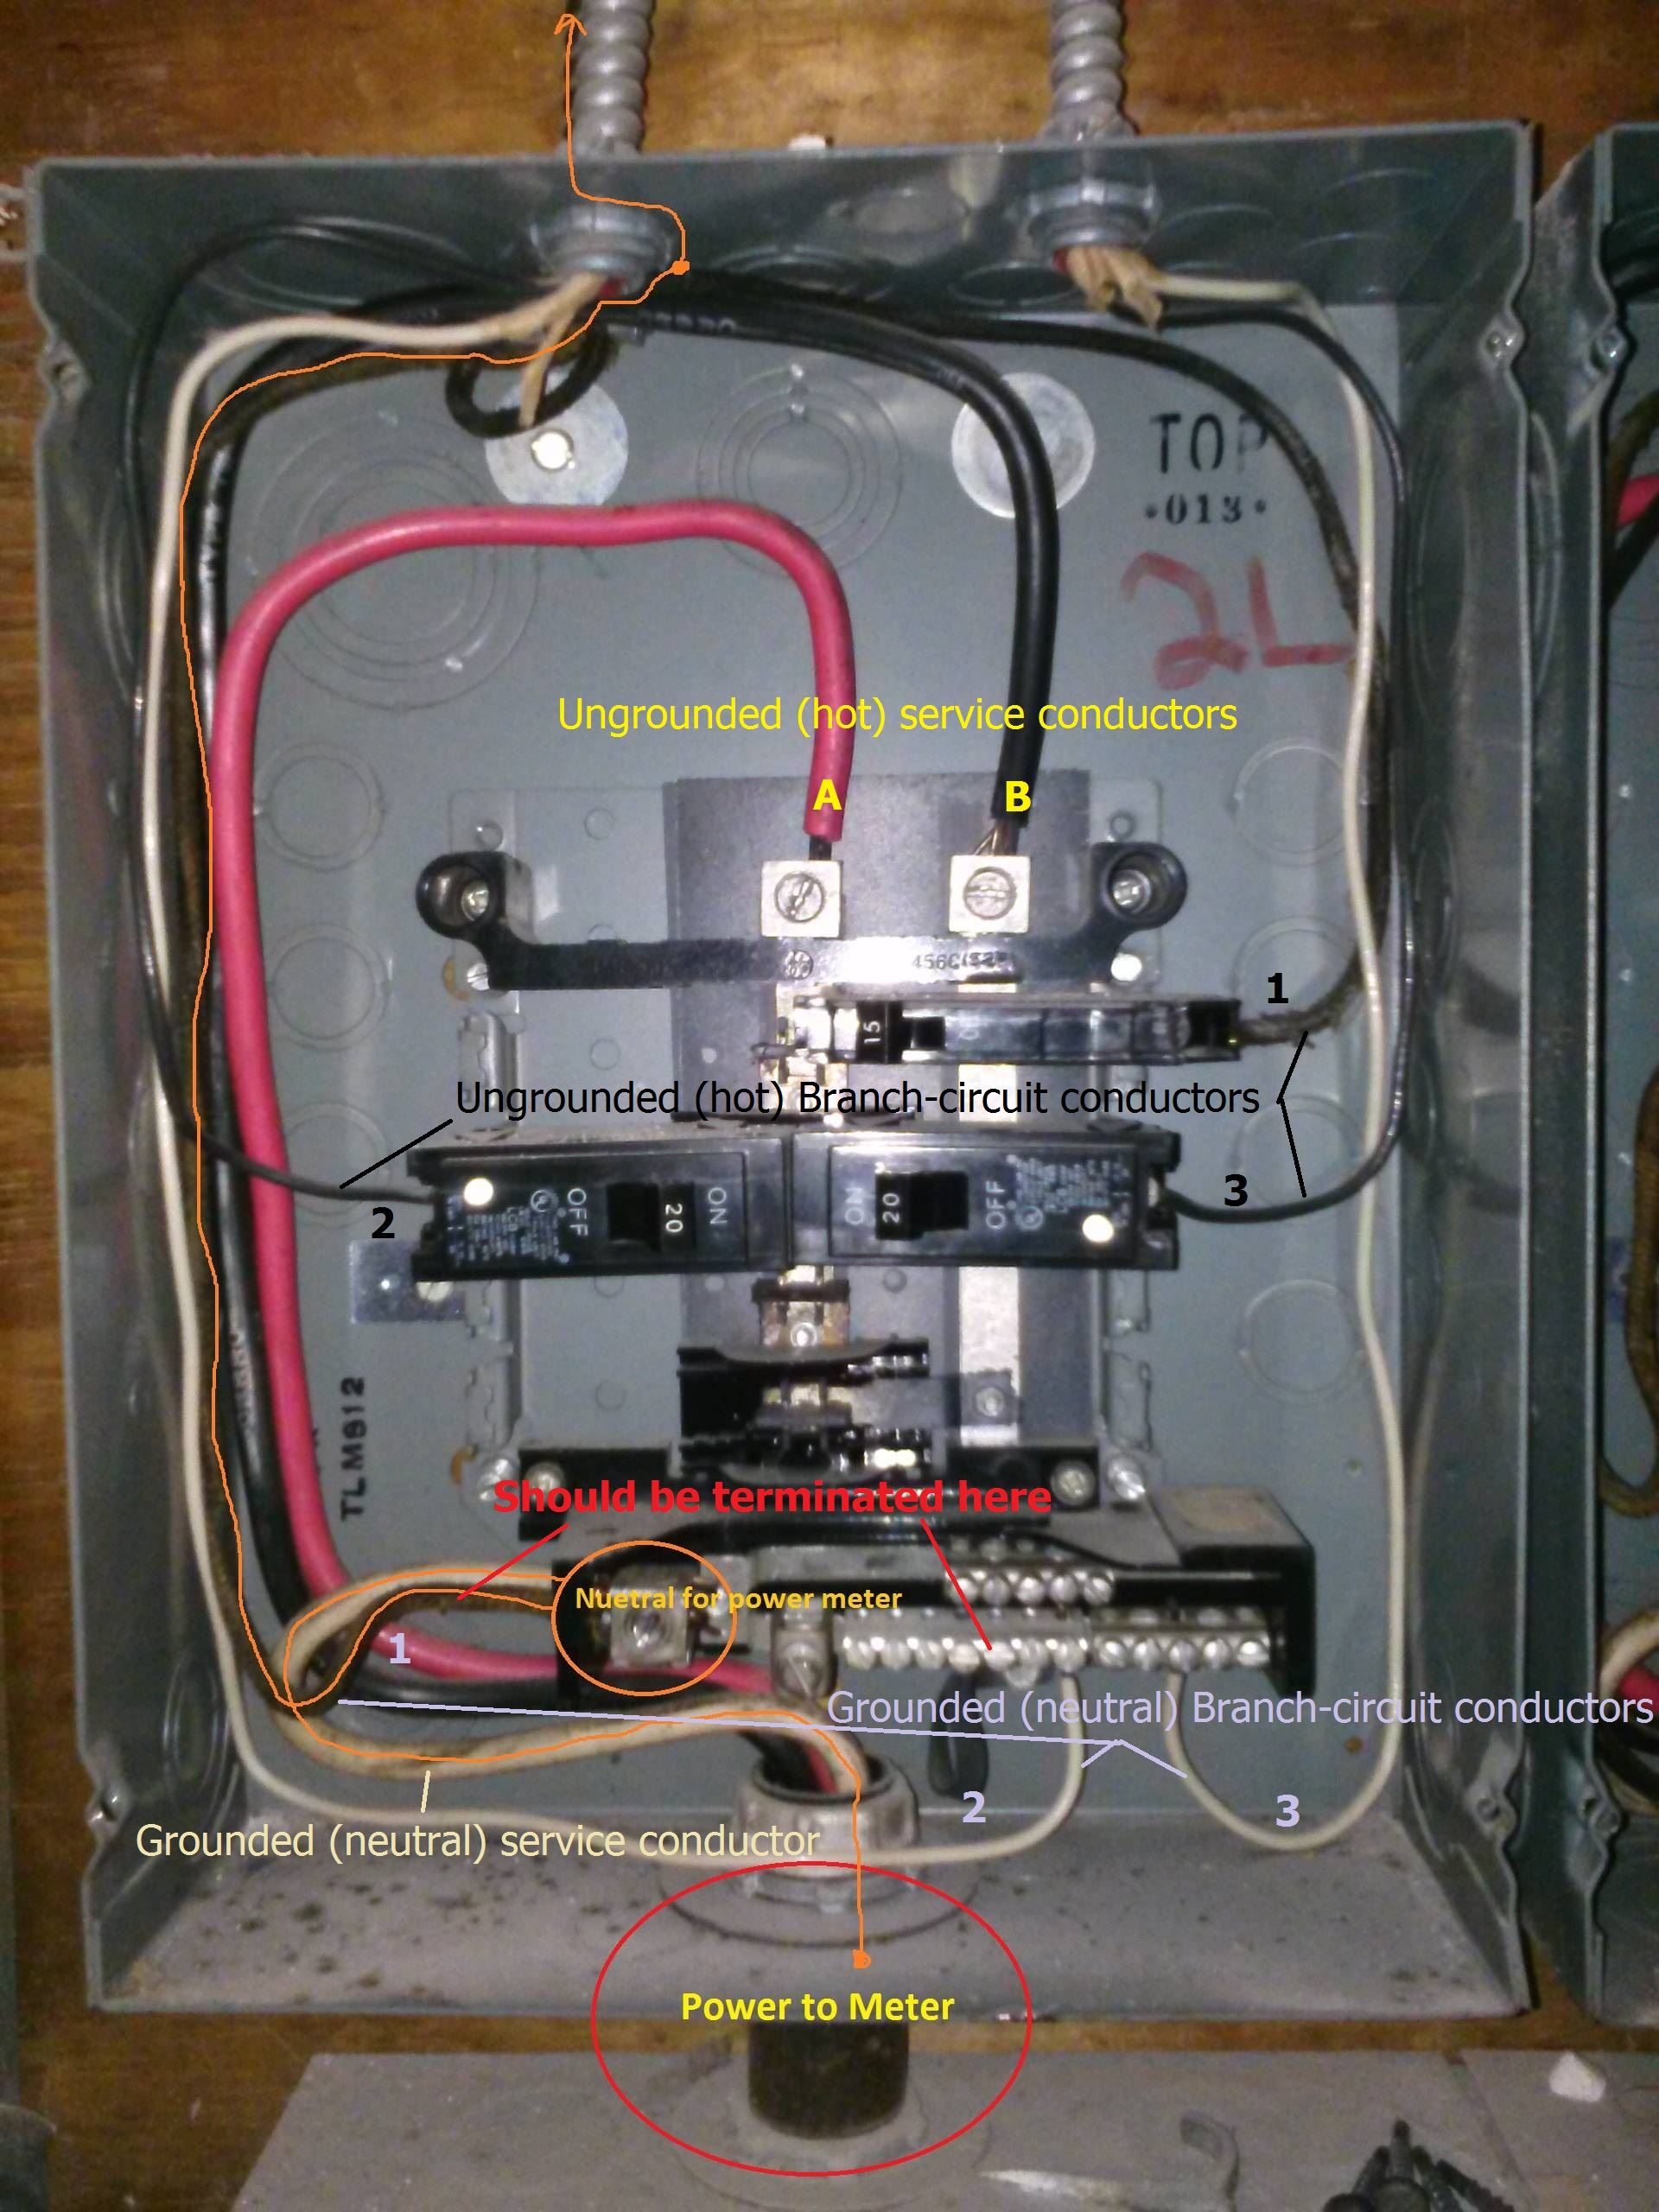 100 Amp Breaker Box Wiring Diagram Label Electrical Should A Neutral Wire Ever Be Connected To